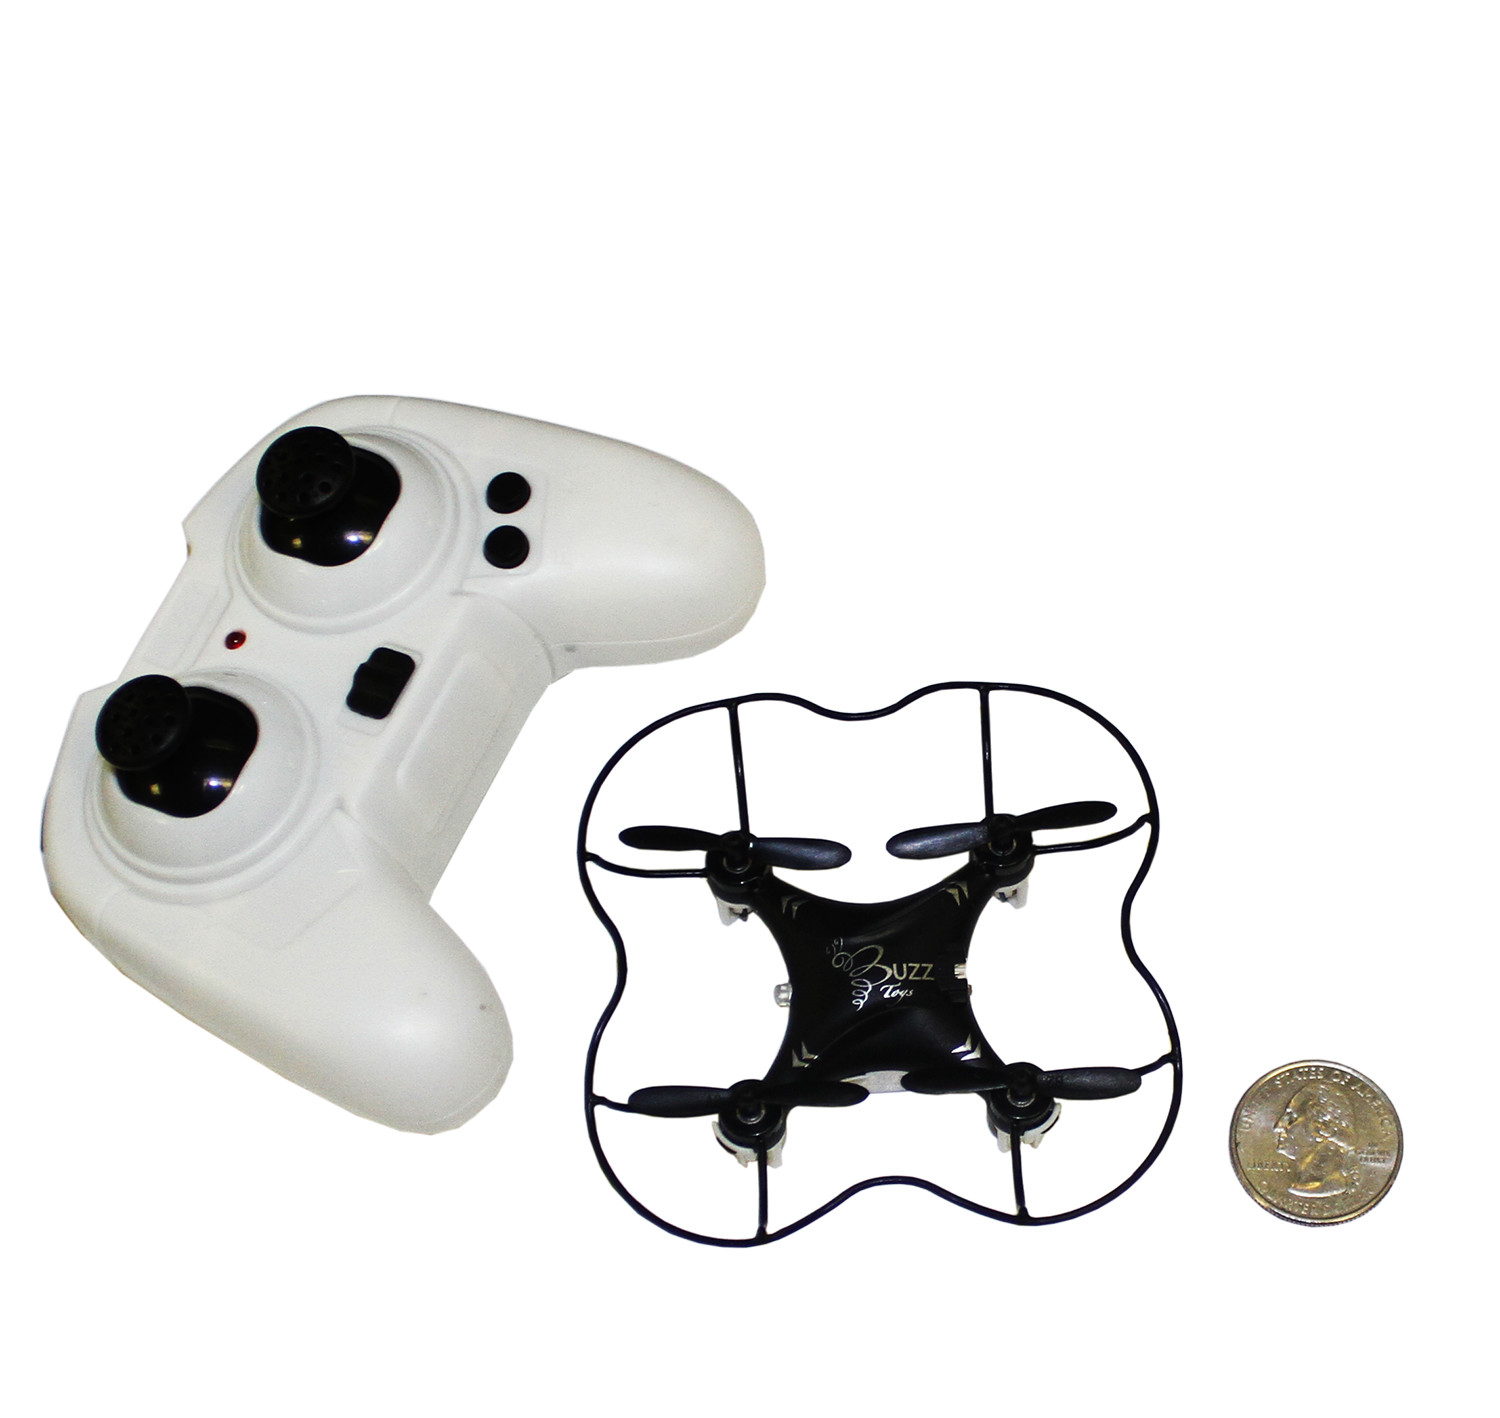 microdrone black Valentines Day Gifts For Him